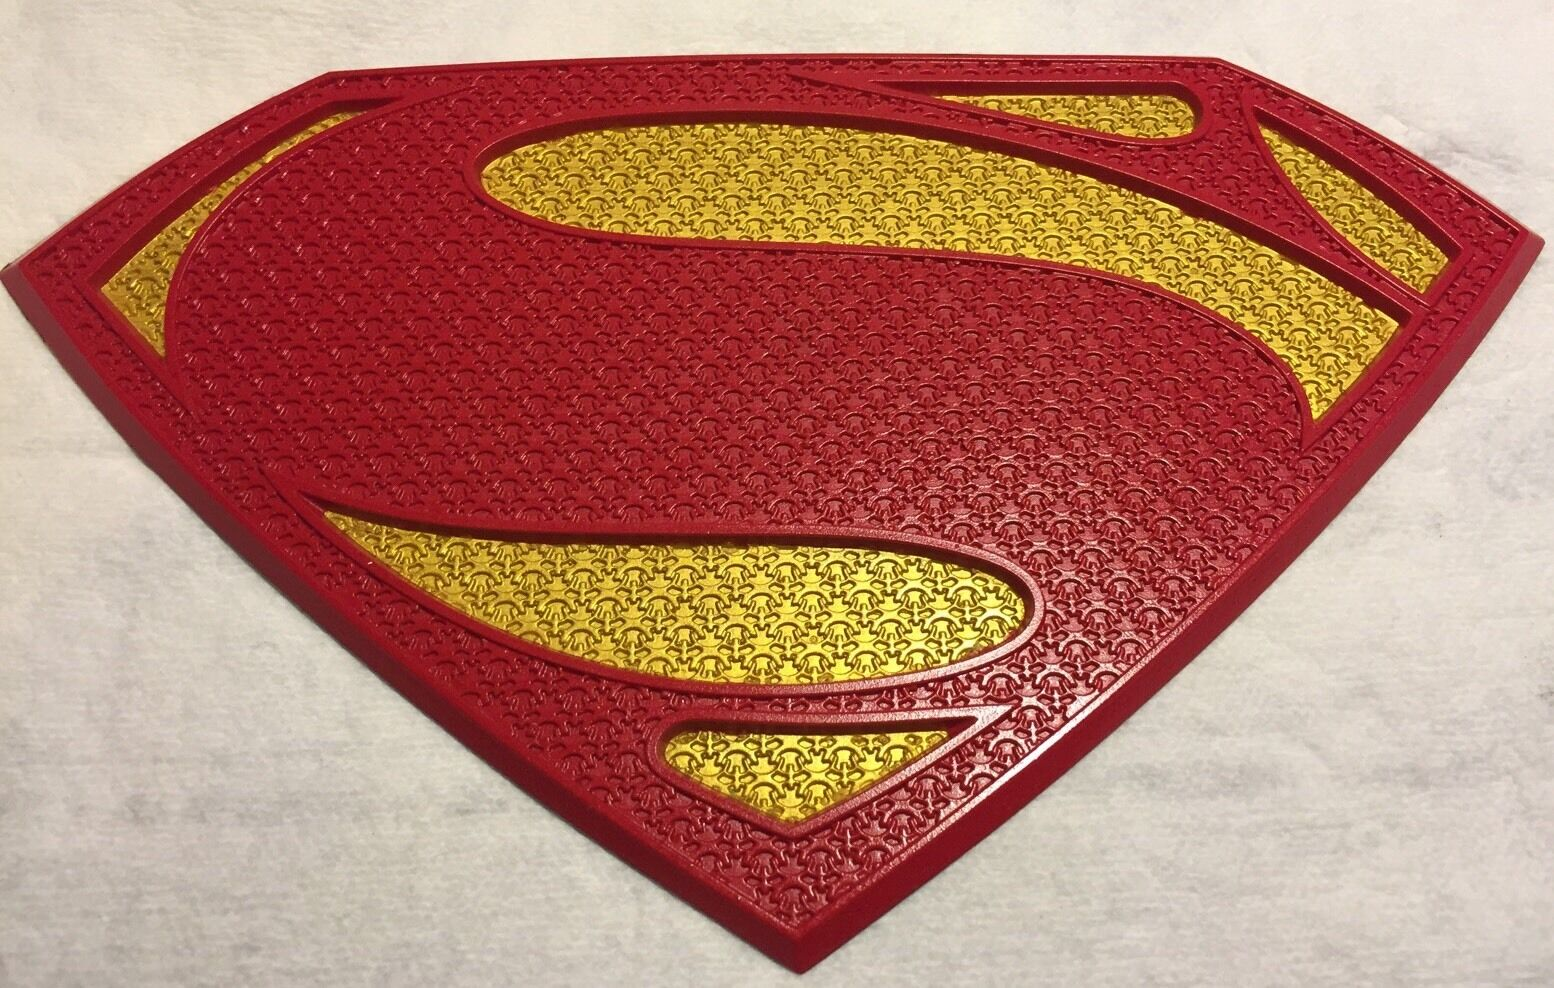 Man Of Steel Superman Chest Logo Emblem Symbol In Red And Gold